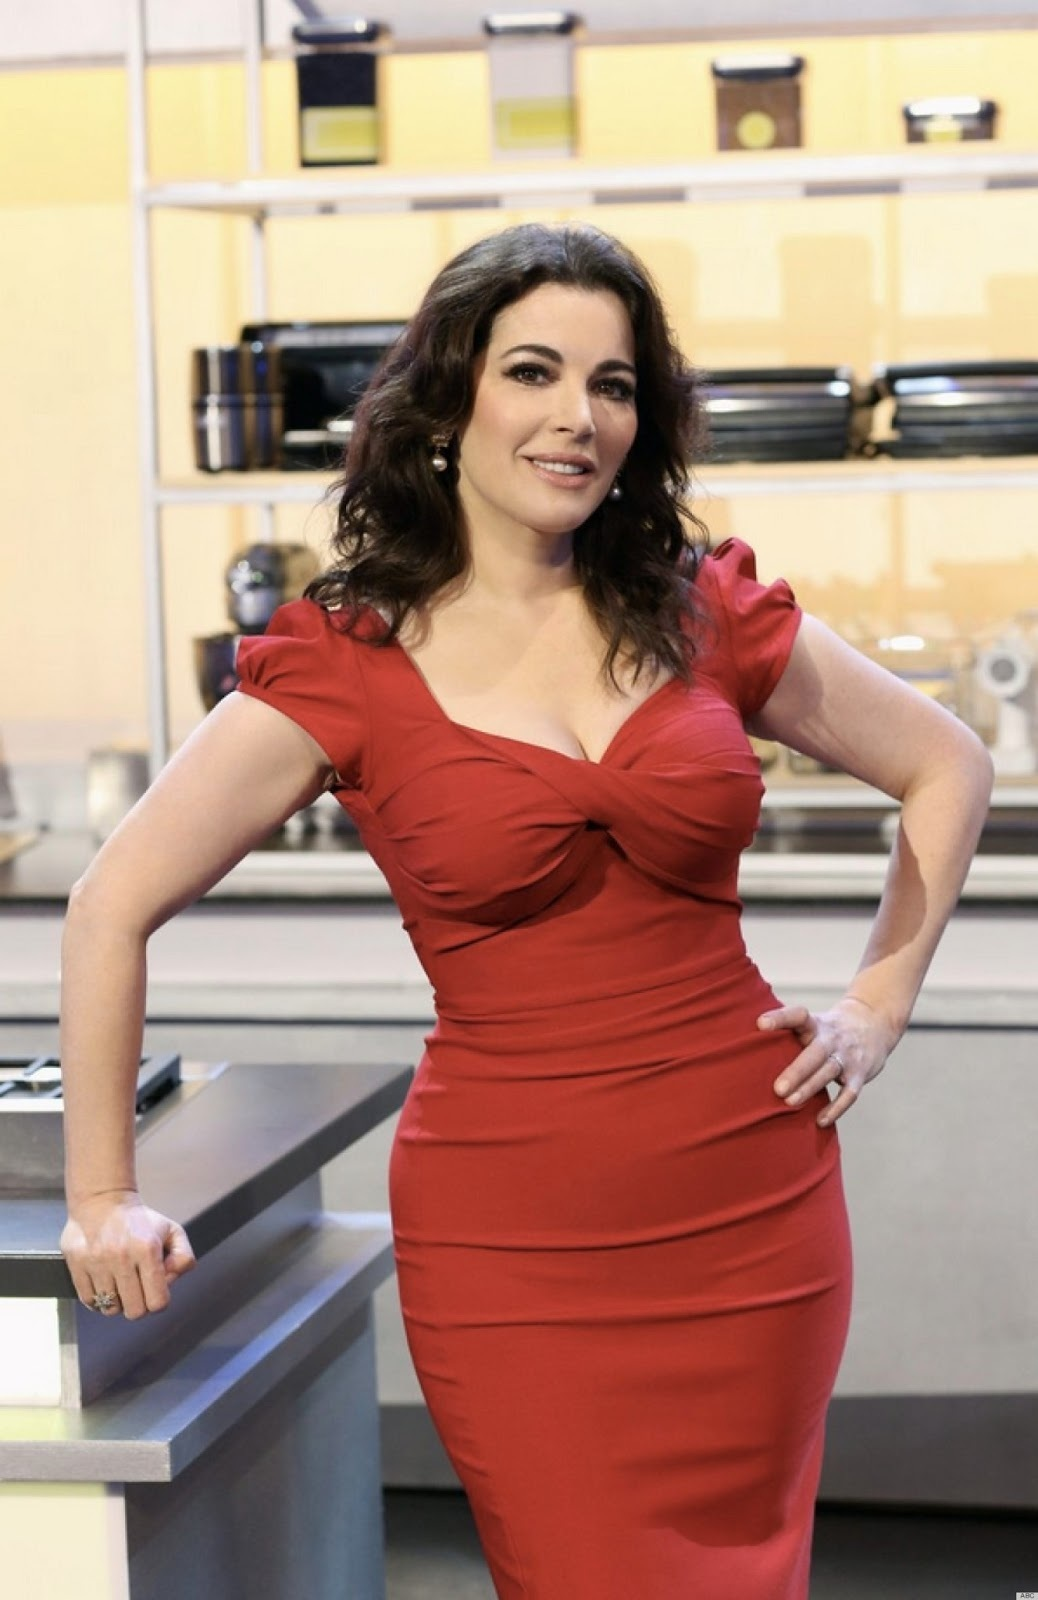 Nigella Lawson Photoshop Facebook Sexy